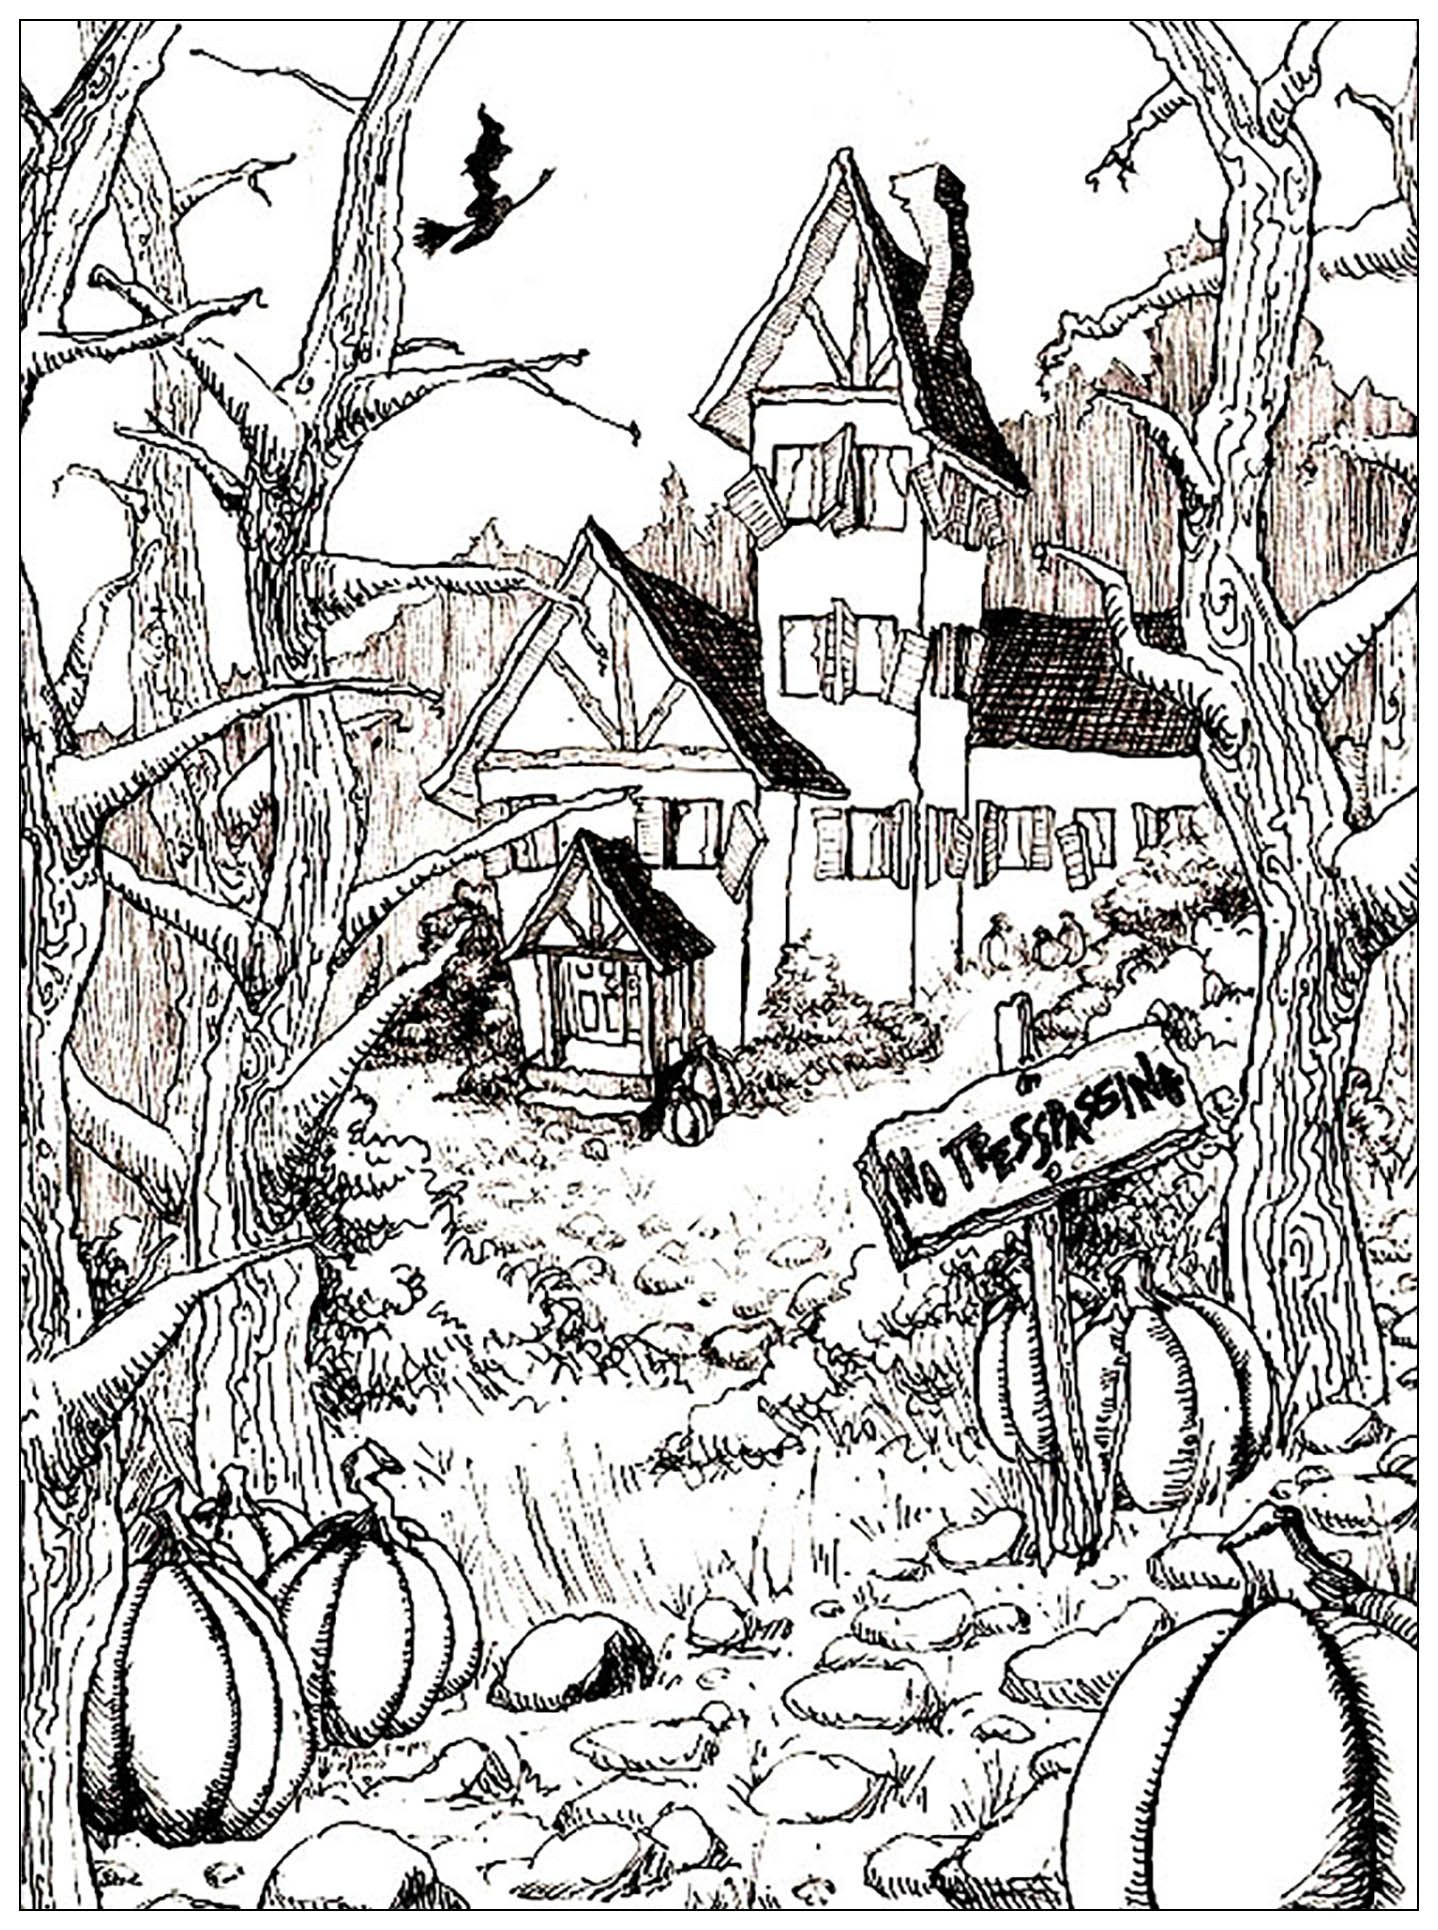 Free coloring pages houses and homes - Free Coloring Page Coloring Halloween Difficult On The Theme Of Halloween Here Is A Very Rich Draing Of A Haunted House At The Bottom Of A Garden Full Of